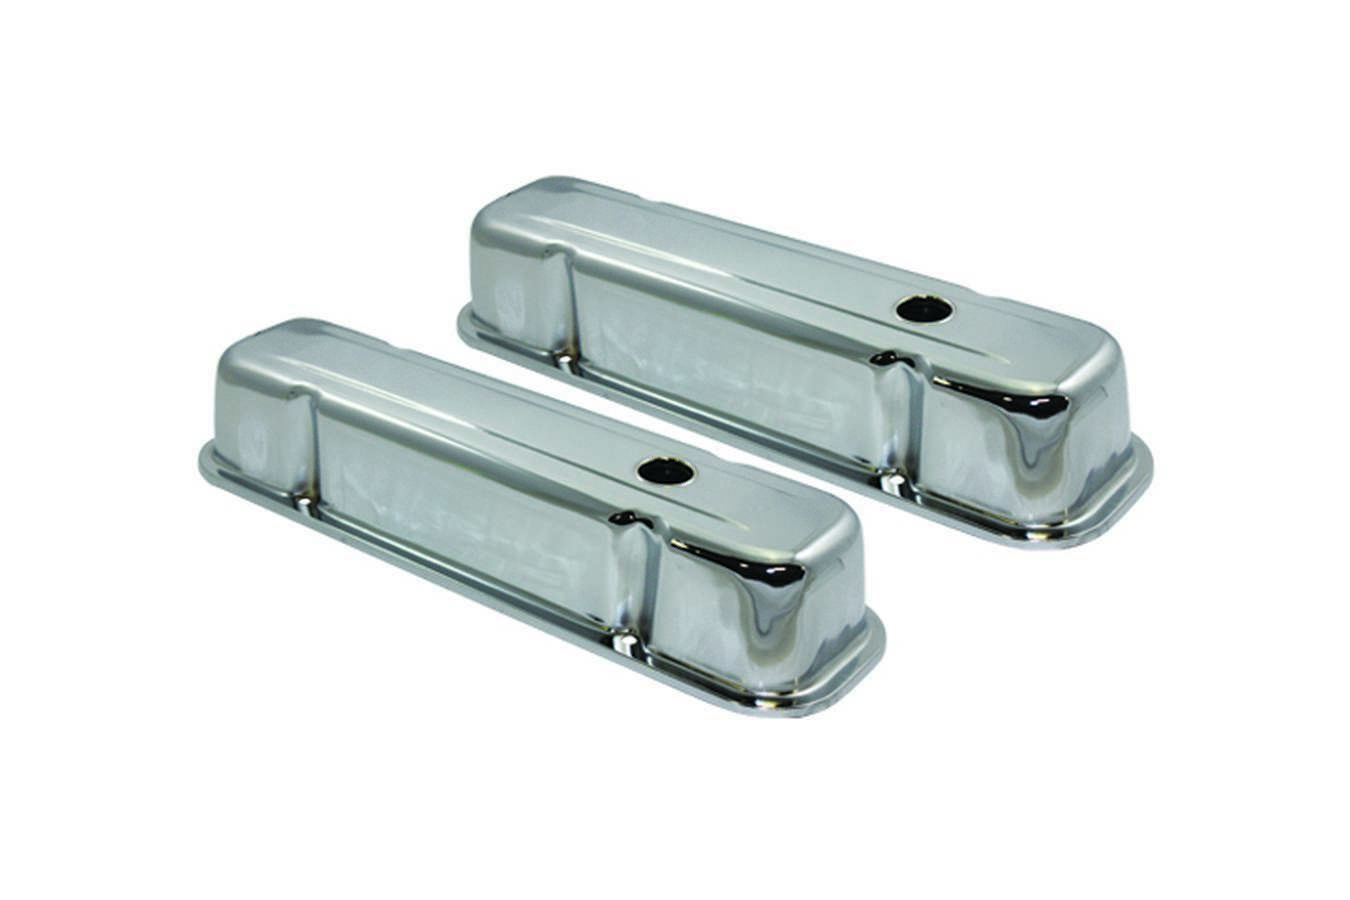 Specialty Products 7525 Valve Cover, Tall, Baffled, Breather Holes, Steel, Chrome, Pontiac V8, Pair